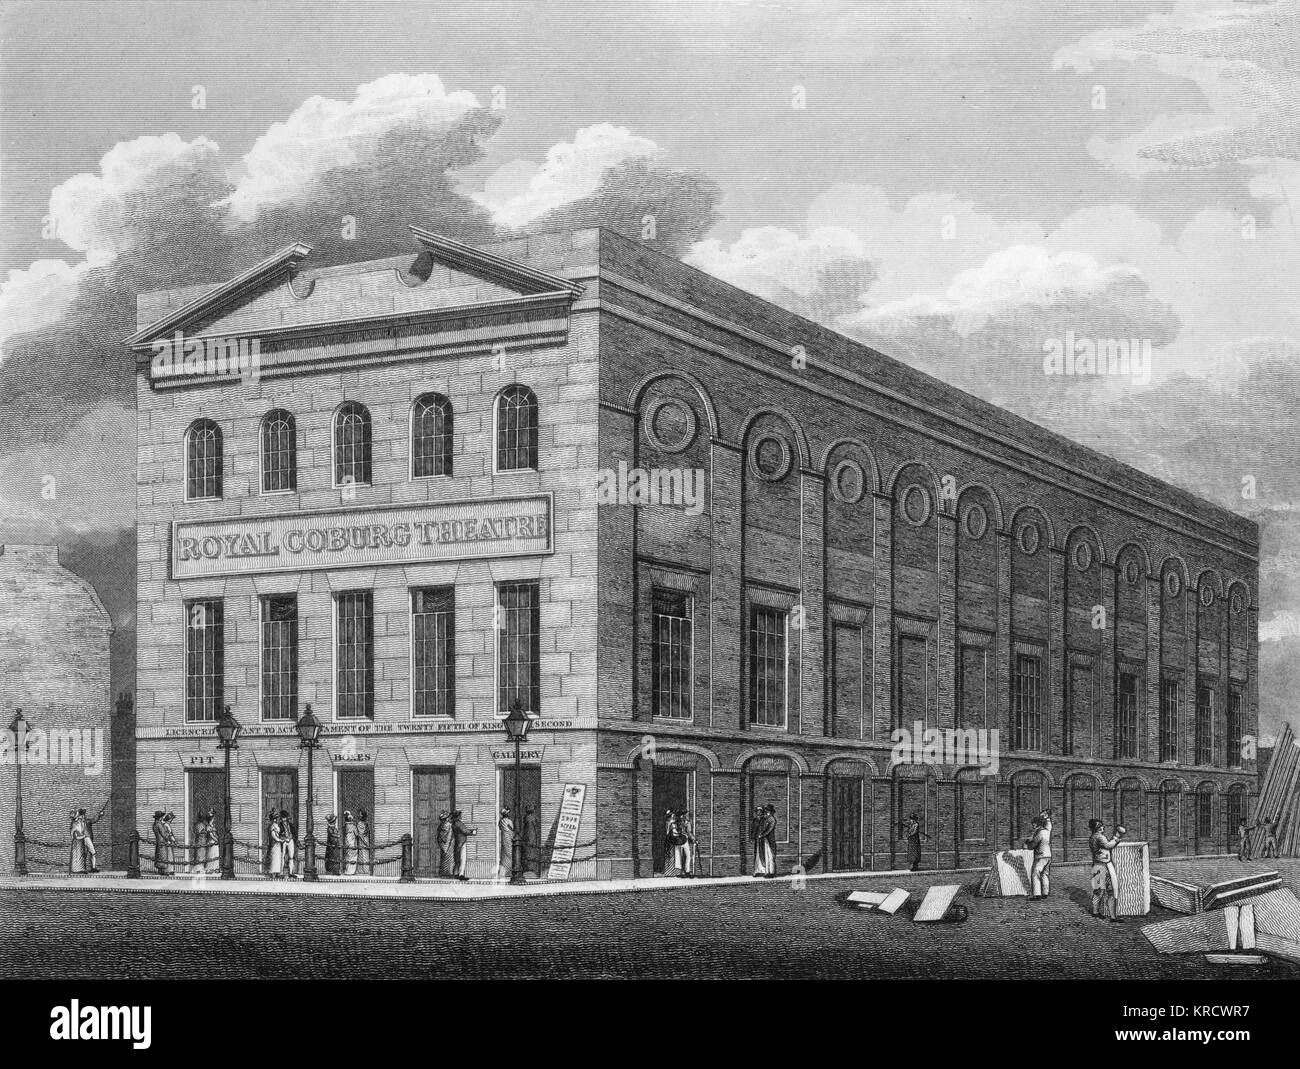 Illustration of the exterior when this London theatre was still called the Royal Coburg Theatre, named after its - Stock Image